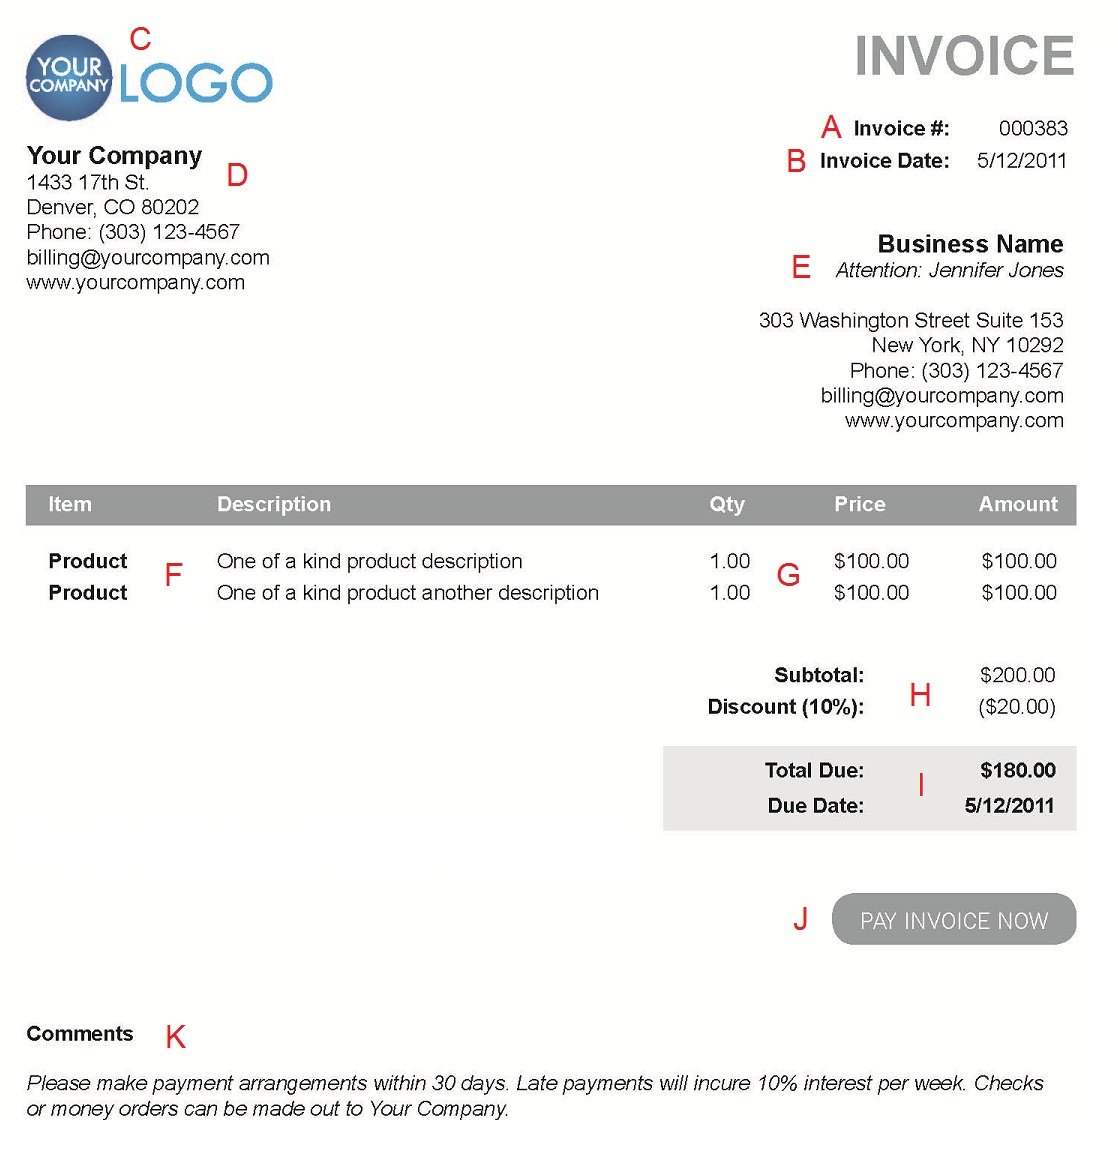 Centralasianshepherdus  Pretty The  Different Sections Of An Electronic Payment Invoice With Inspiring A  With Nice Paypal Invoice Scam Also Invoice With Carbon Copy In Addition What Is A Proforma Invoice In The Uk And Quickbooks Invoice Manager As Well As Requirements For An Invoice Additionally Edi Invoicing From Paysimplecom With Centralasianshepherdus  Inspiring The  Different Sections Of An Electronic Payment Invoice With Nice A  And Pretty Paypal Invoice Scam Also Invoice With Carbon Copy In Addition What Is A Proforma Invoice In The Uk From Paysimplecom